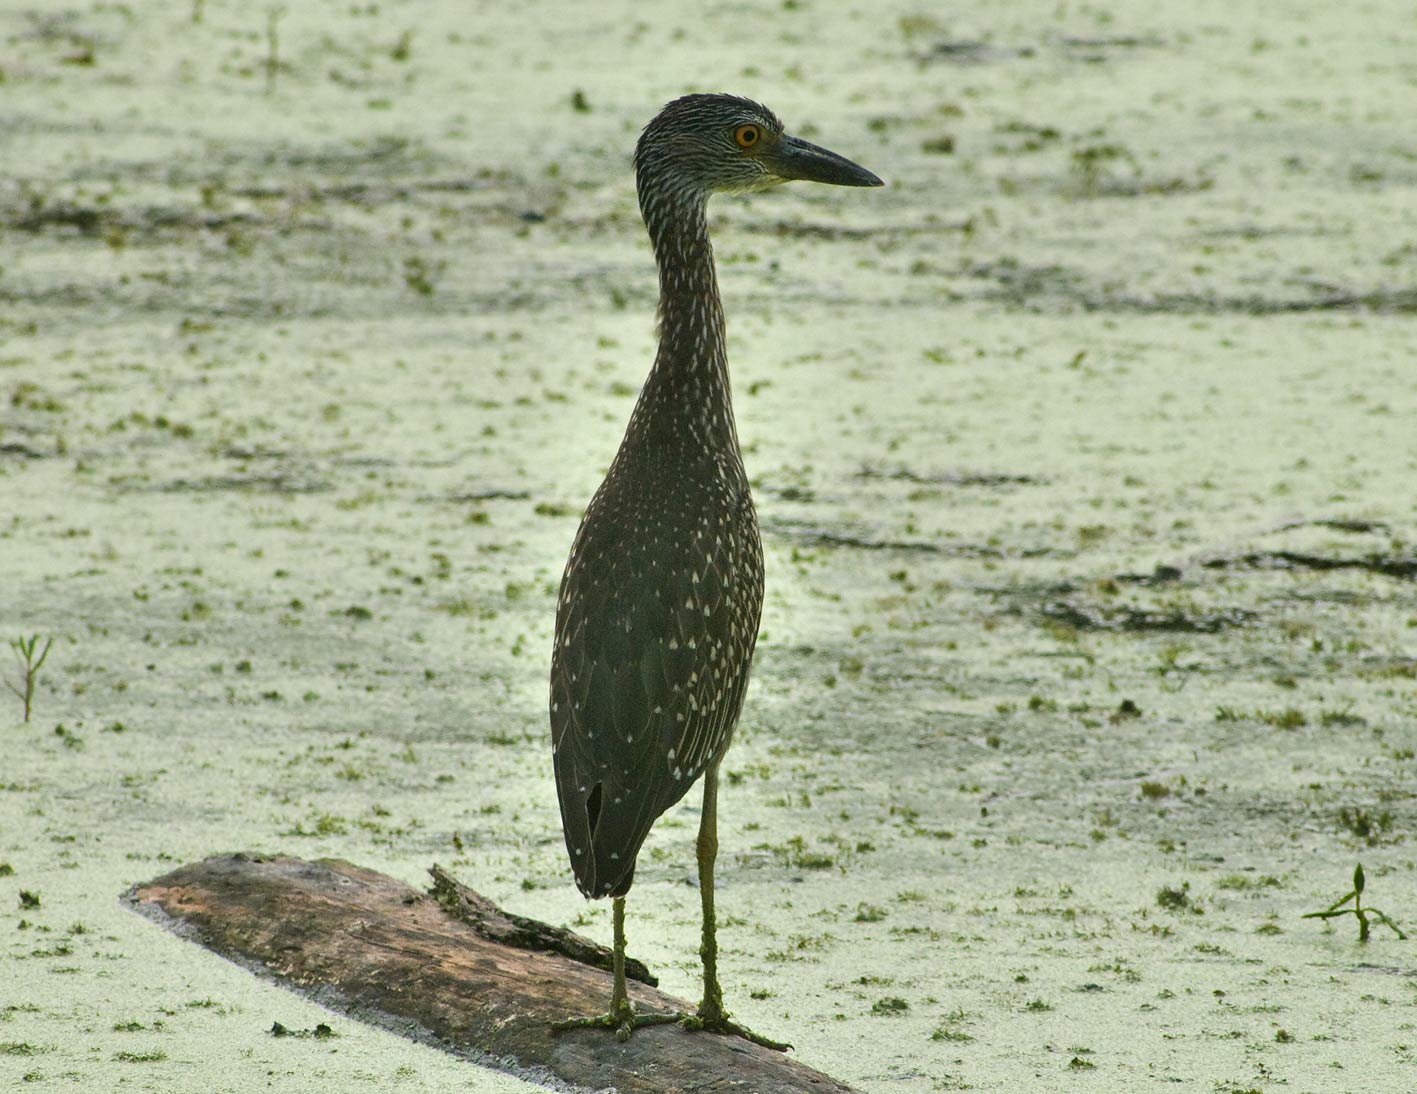 Juvenile yellow-crowned night heron bird on west...Bend State Park. Needville, Texas